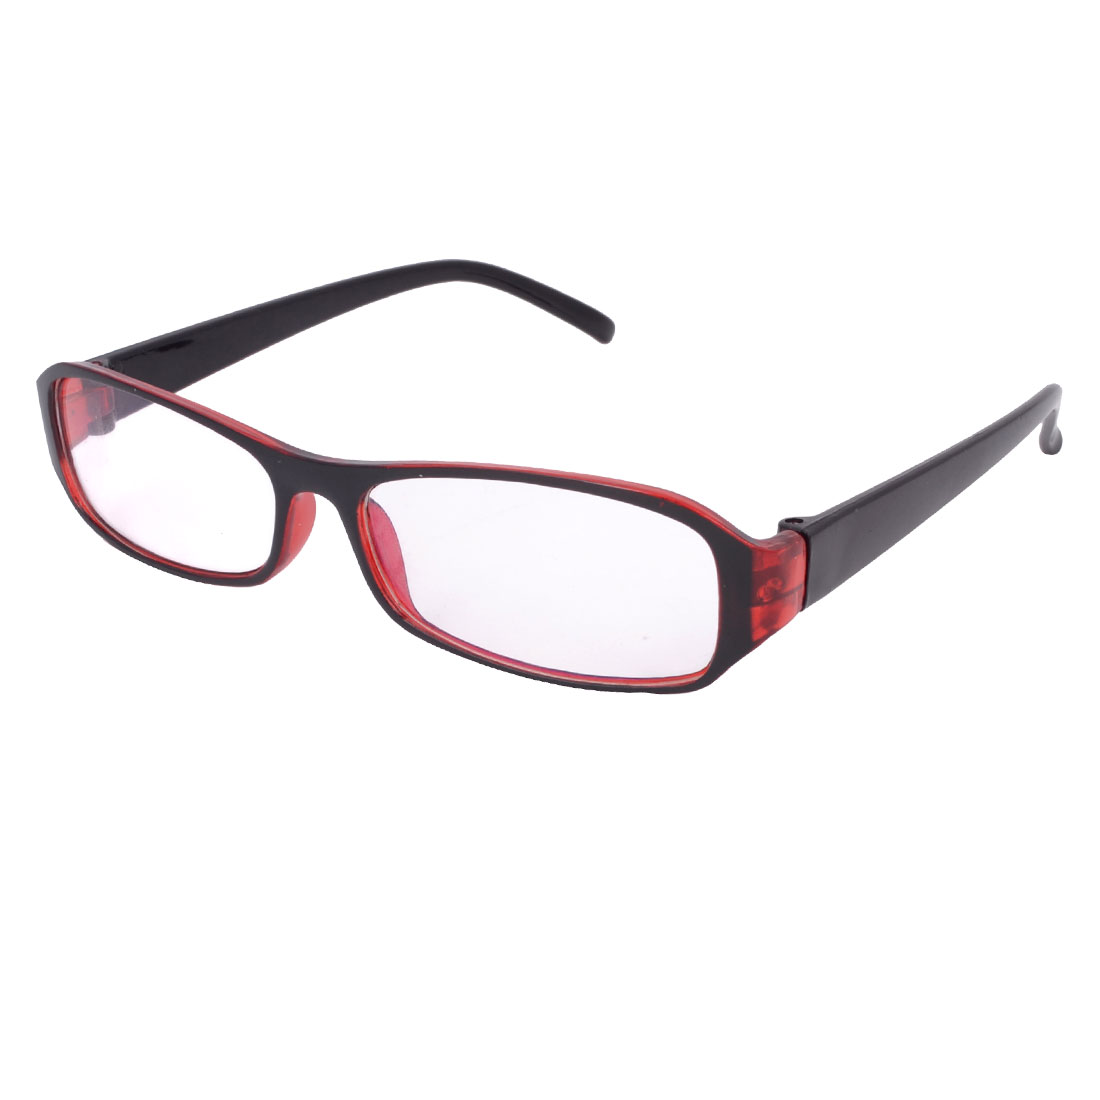 Burgundy Plastic Slim Temples Single Bridge Rectangular Clear Lens Plain Glasses for Lady